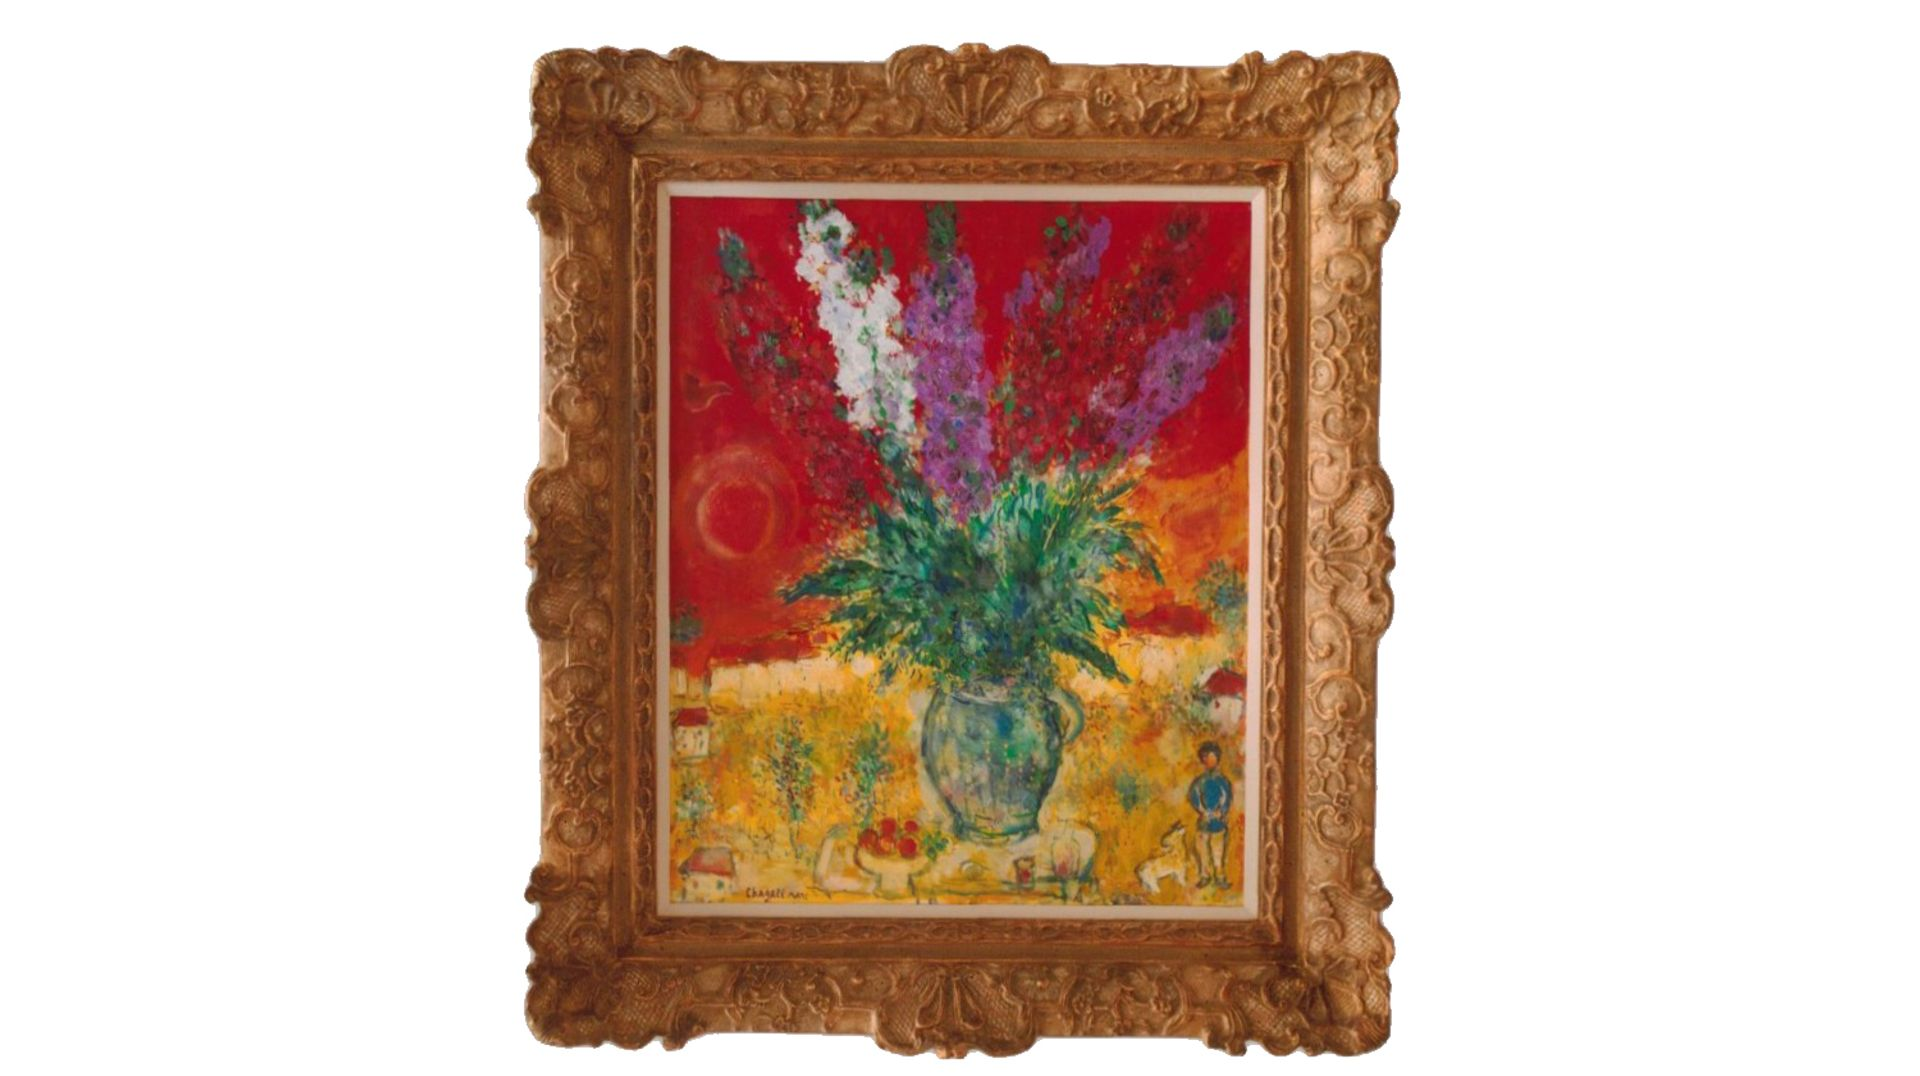 Marc Chagall's Bouquet de giroflées (1971) is listed as stolen on the FBI's database